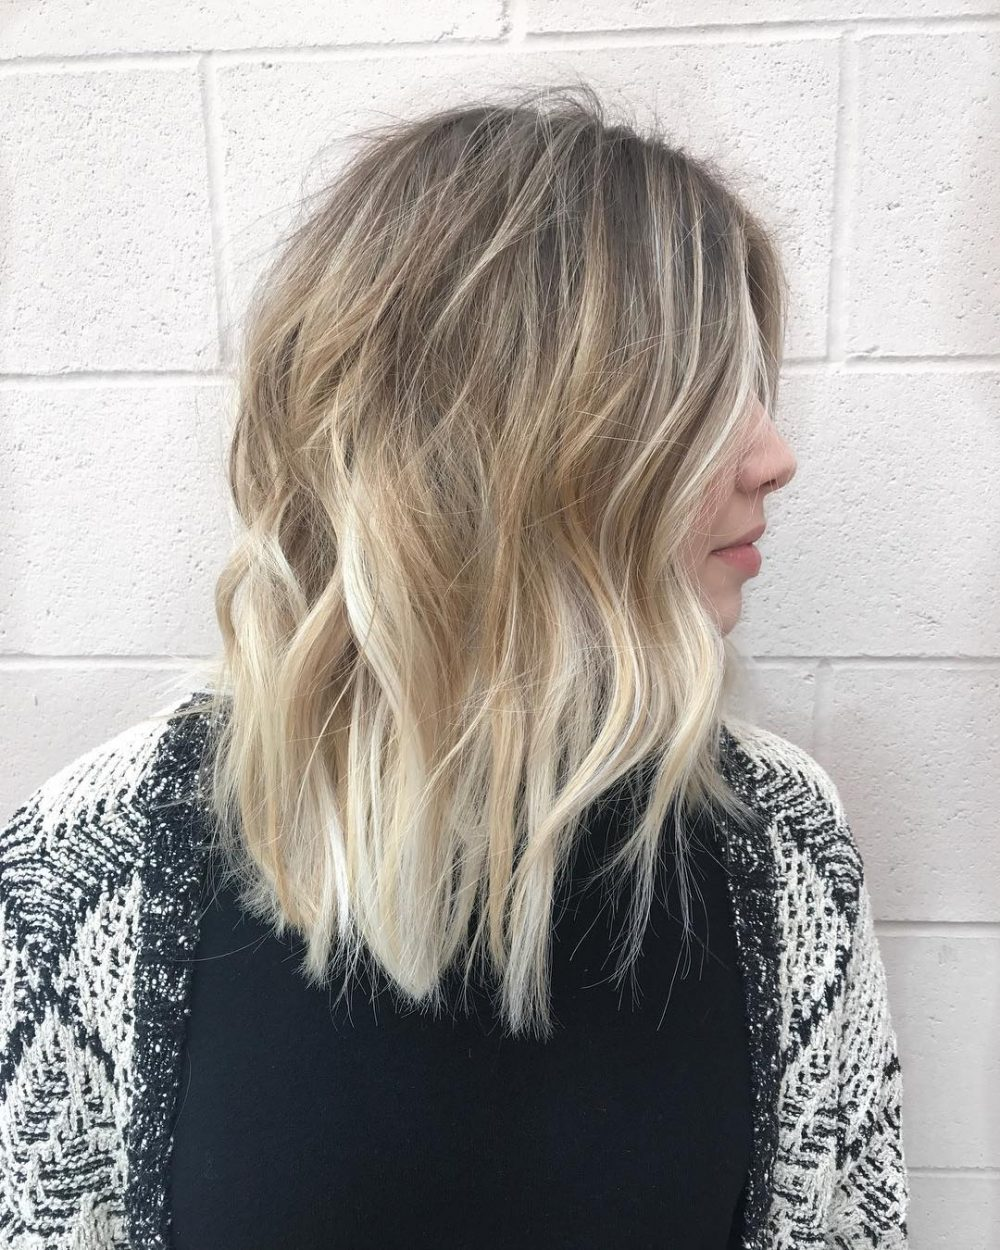 Ash Blonde to Bright Blonde Ombre LOB